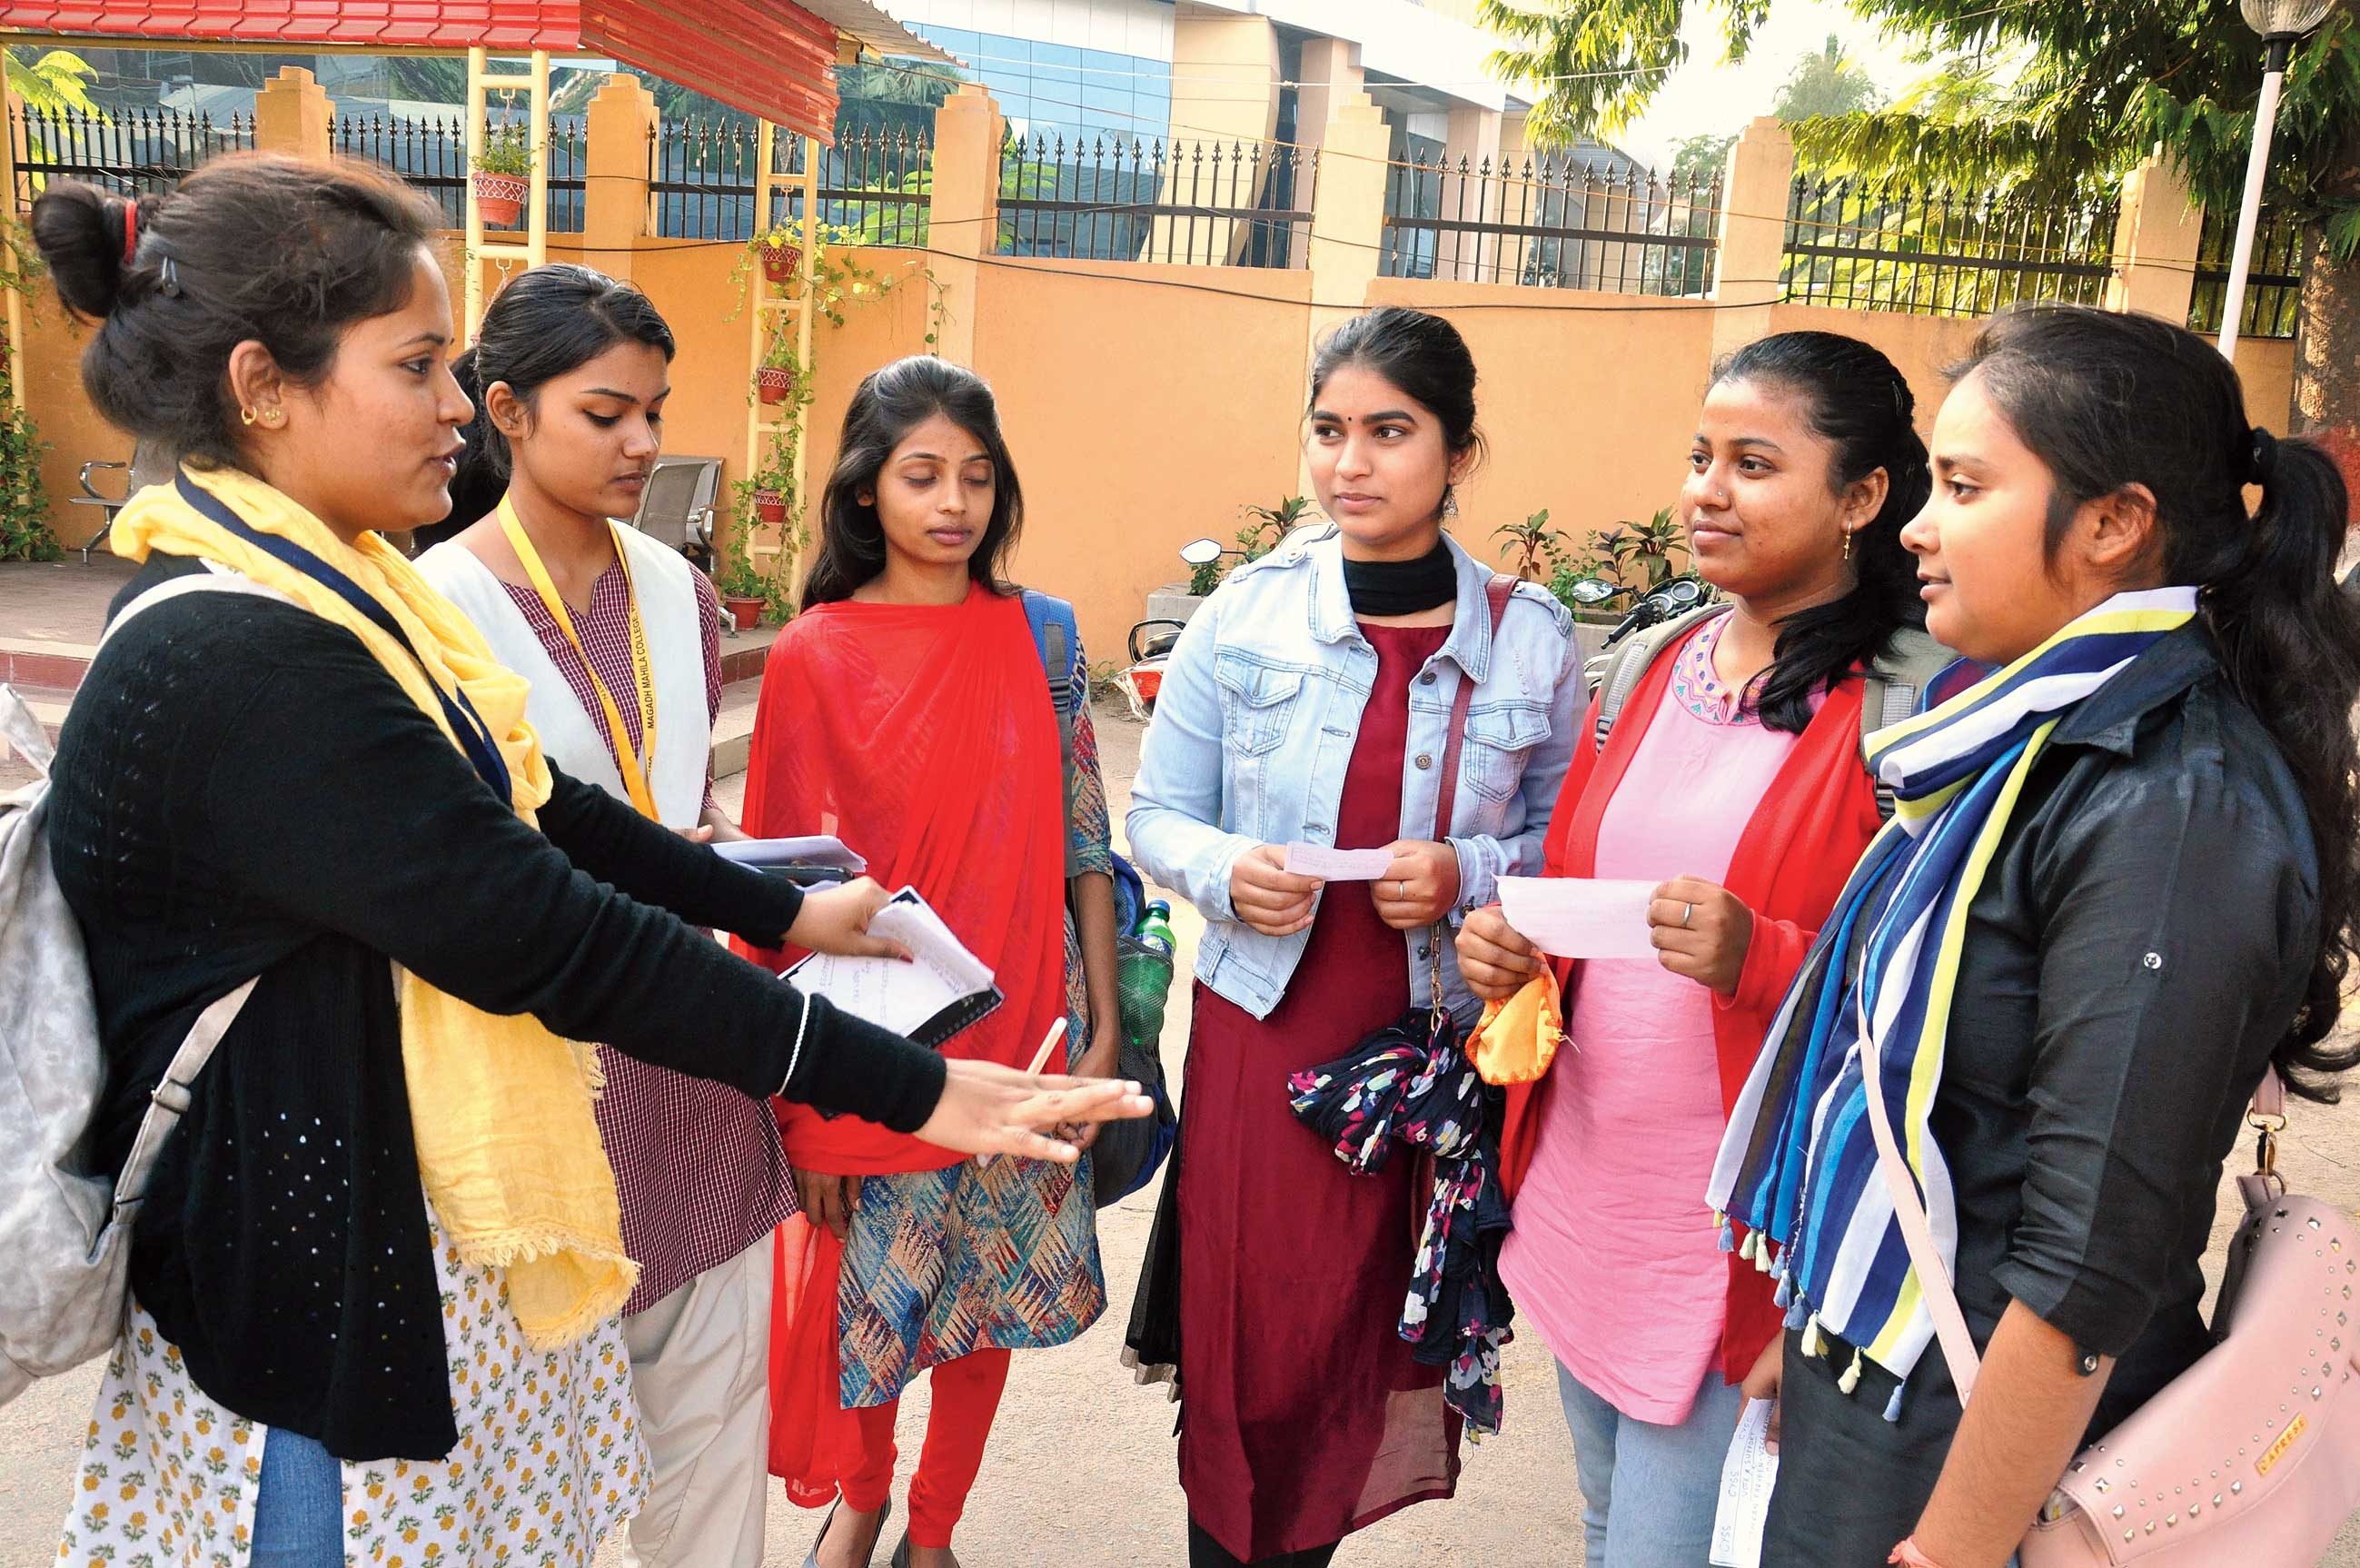 A student campaigns on Tuesday at Magadh Mahila College ahead of the Patna University Students' Union elections.